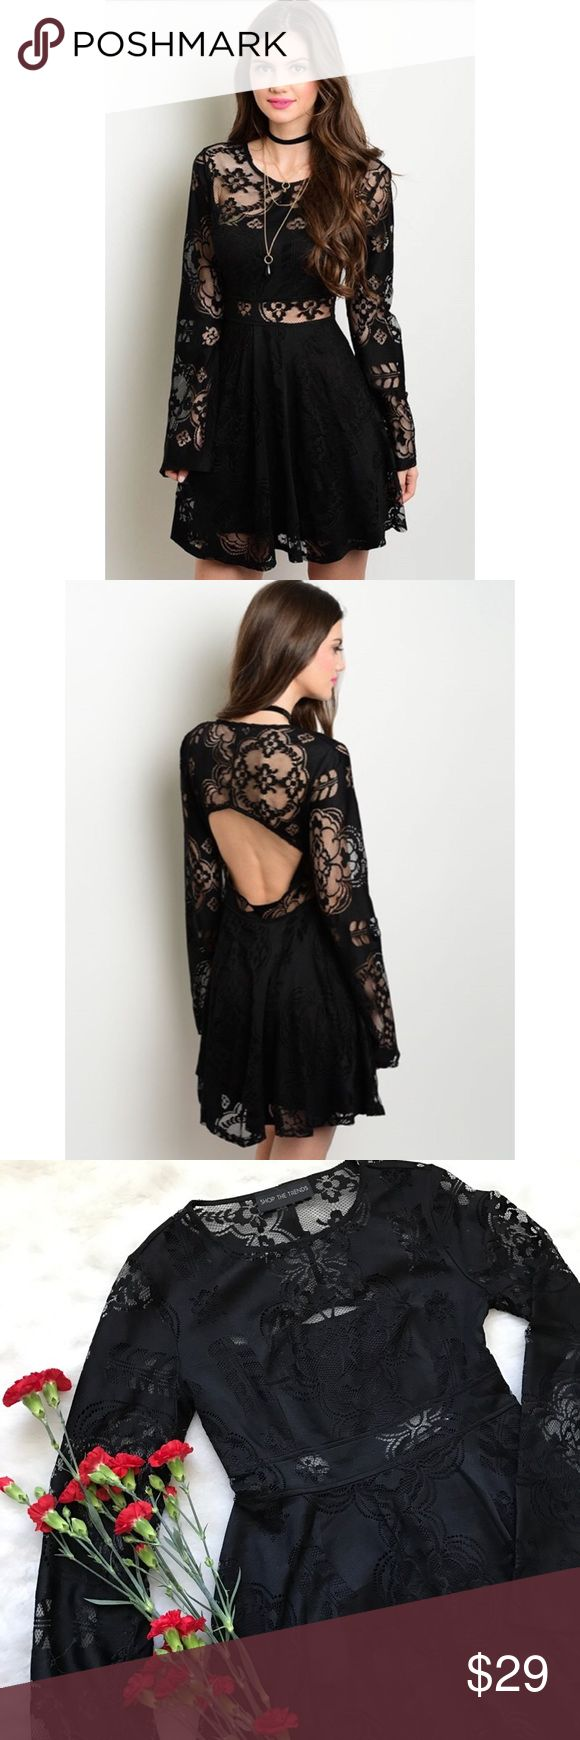 "Festival Love Black Lace Dress❤️ Hello gorgeous! Take this beauty out  for a night of fun. Perfect to pair with black or nude heels. Features a lace look & lace long bell sleeves. Grab this one of kind piece ASAP☺️  Material: 96% Polyester 4% Spandex  Size Small Measurements: (L): 33"" (B): 33"" (W): 24"" Fit: TTS 1 inch difference in between sizes.   Use the Buy Now feature to select your size & purchase☺️ Stylish Goodies Dresses Midi"